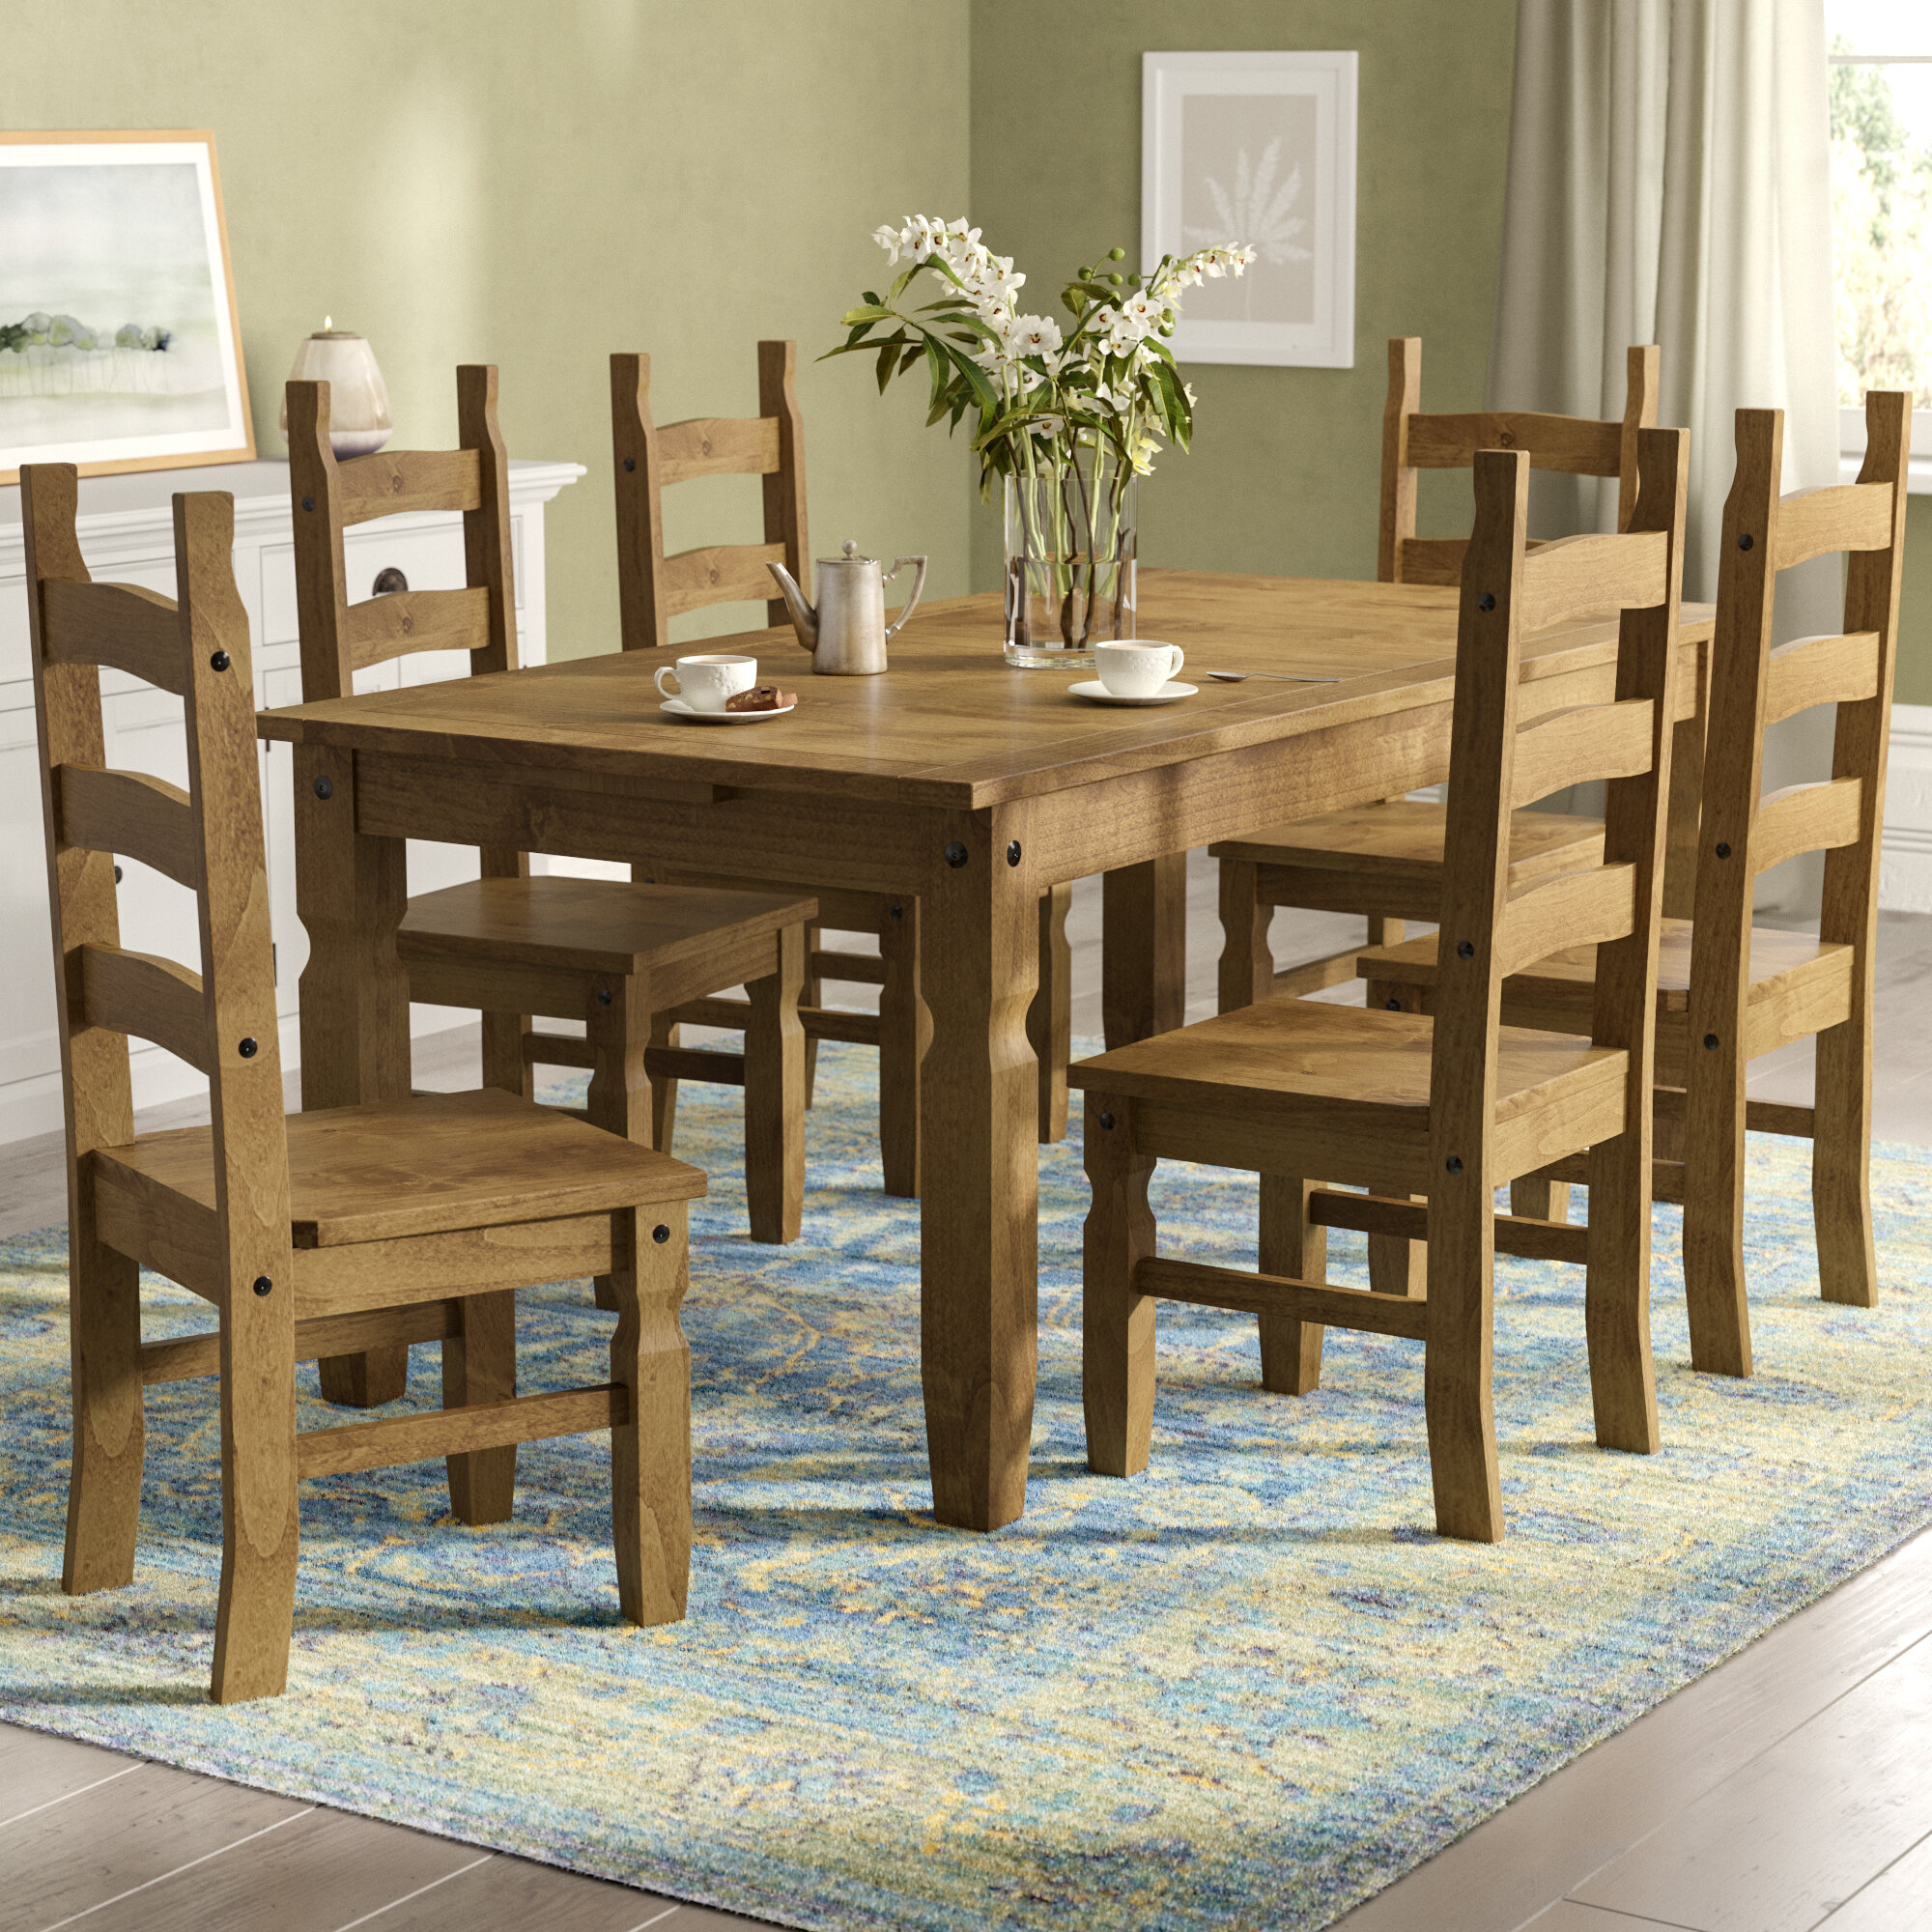 Home haus classic corona dining set with 6 chairs reviews wayfair co uk